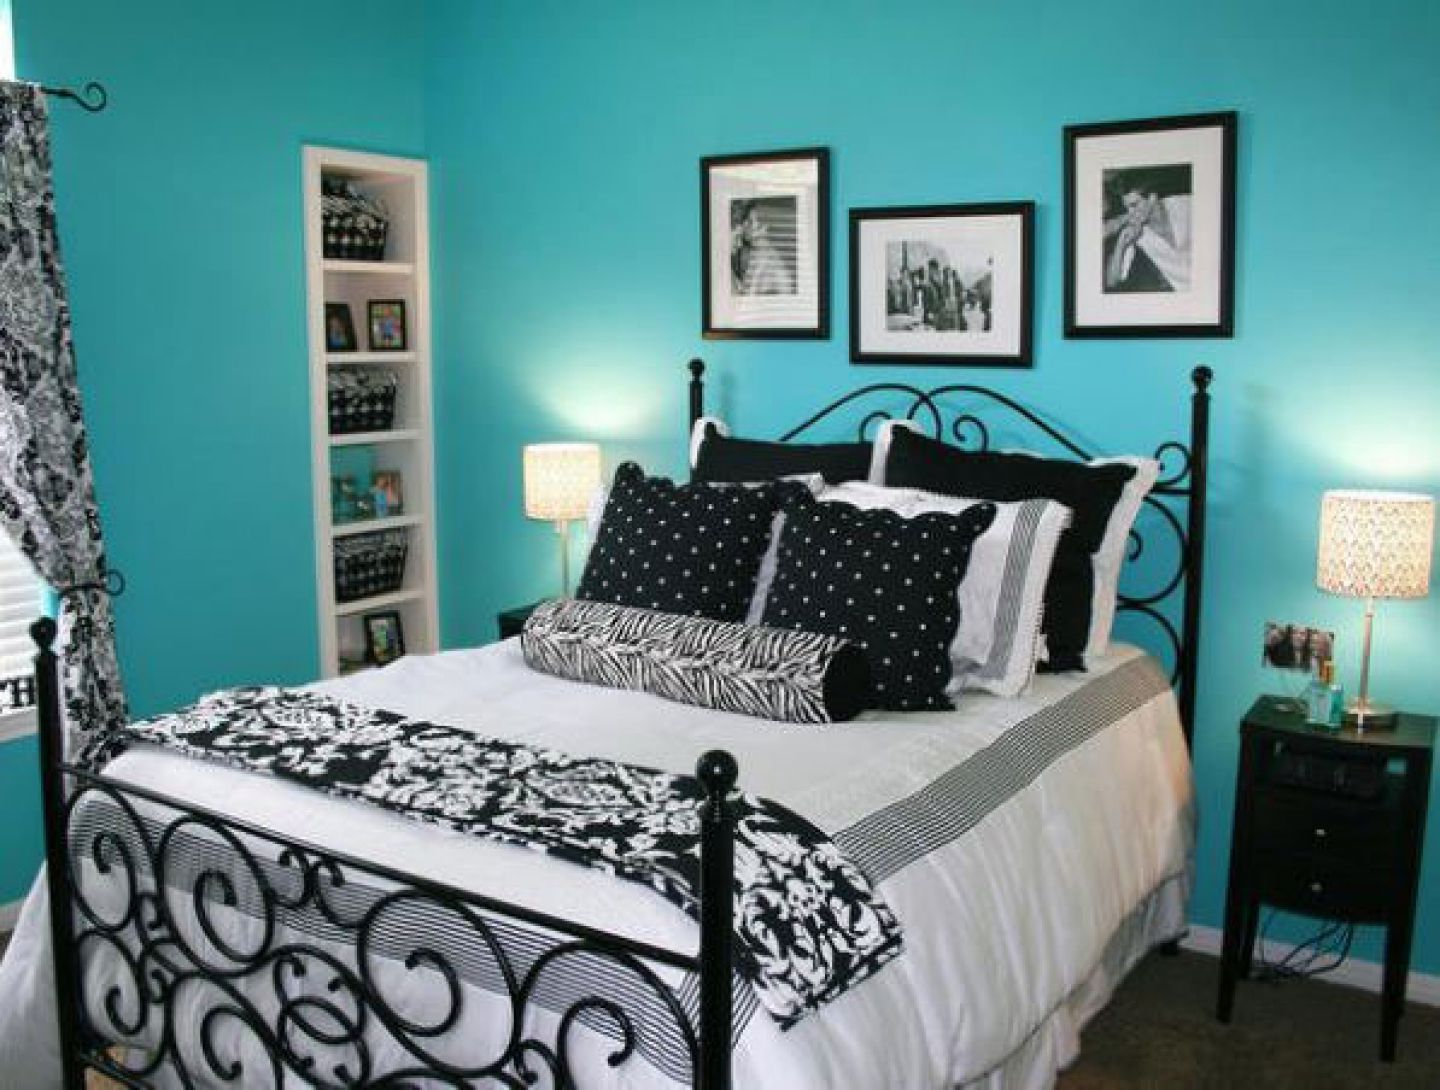 Bedroom colors ideas for teenage girls - 17 Best Images About Teen Girls Rooms On Pinterest Girls Bedroom Colors Tween And Comforter